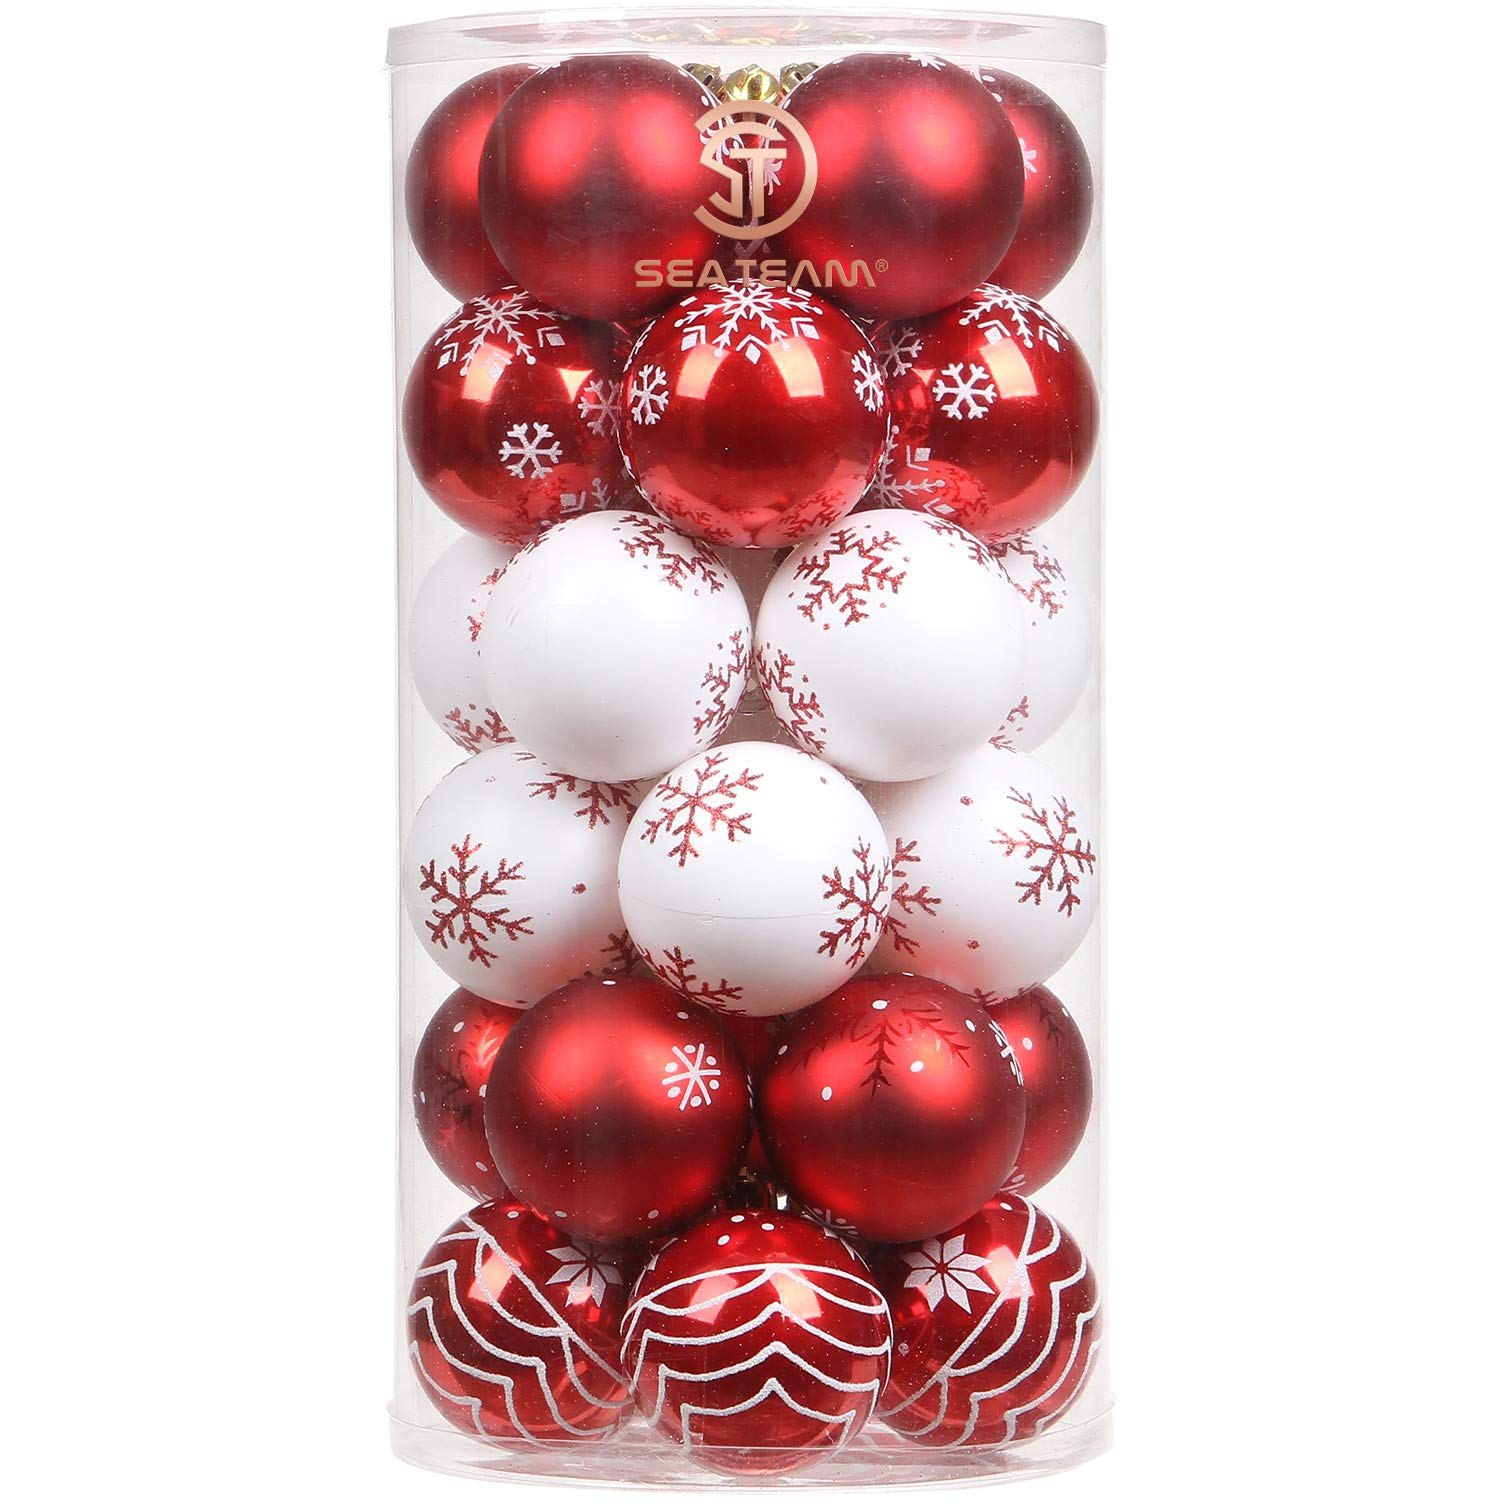 """Sea Team 60mm/2.36"""" Delicate Contrast Color Theme Painting & Glittering Christmas Tree Pendants Decorative Hanging Christmas Baubles Balls Ornaments Set - 30 Pieces (Red & White)"""